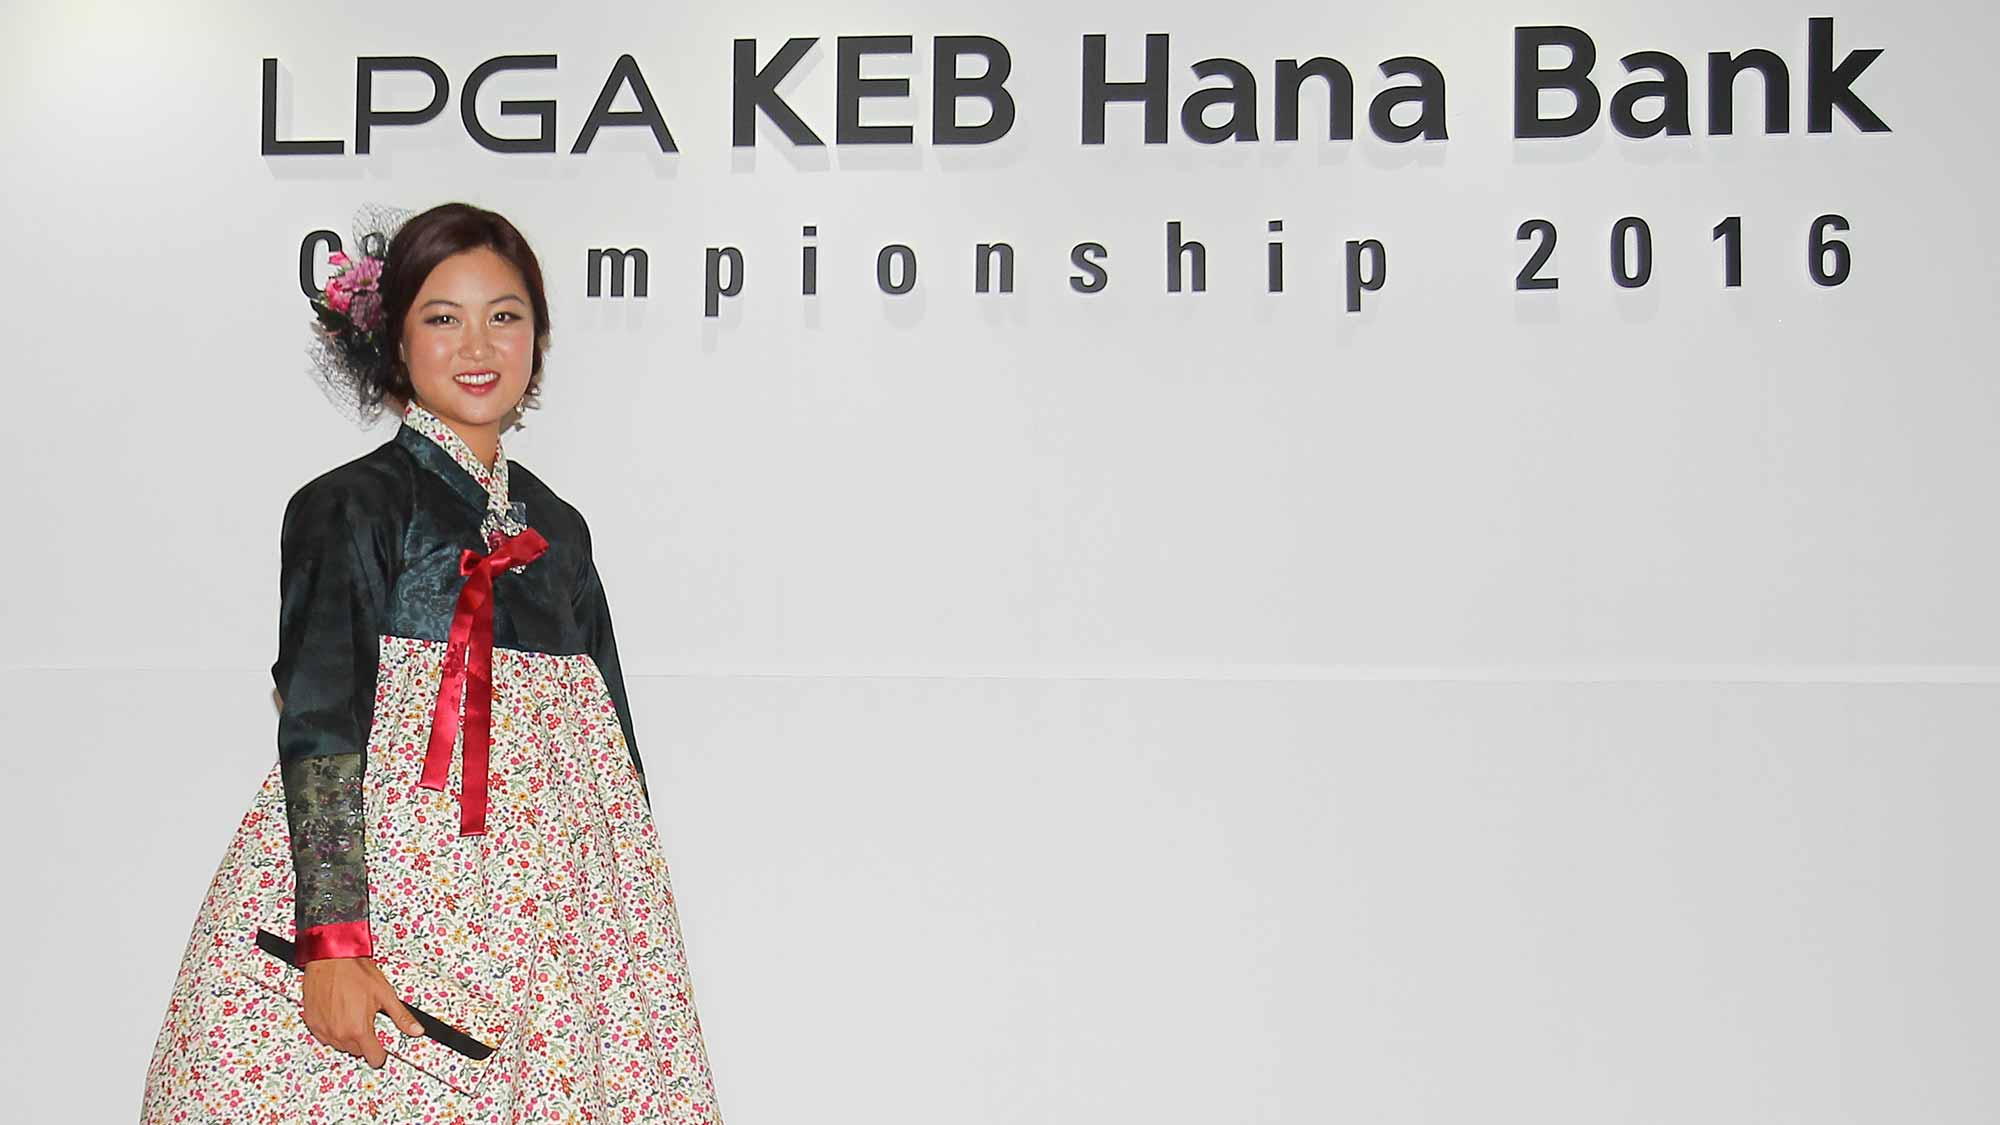 Minjee Lee poses for a photo at the LPGA KEB Hana Bank Pro-Am Party